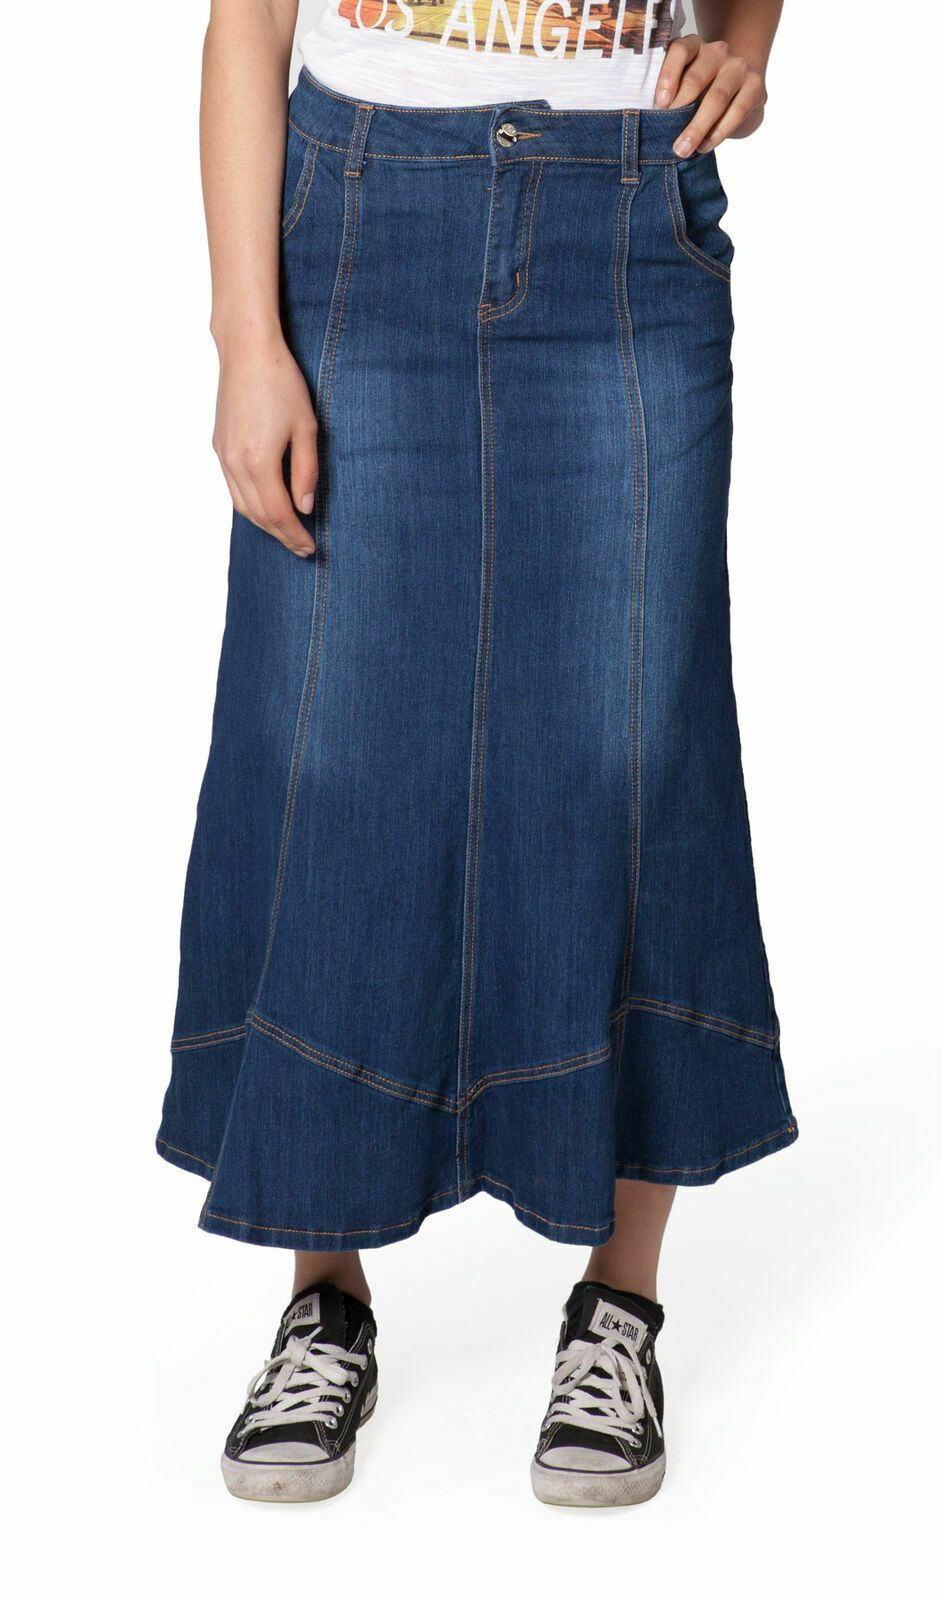 Front close-up view of machine washable, medium-weight denim skirt with a clear view of belt loops, panels and front zipper.